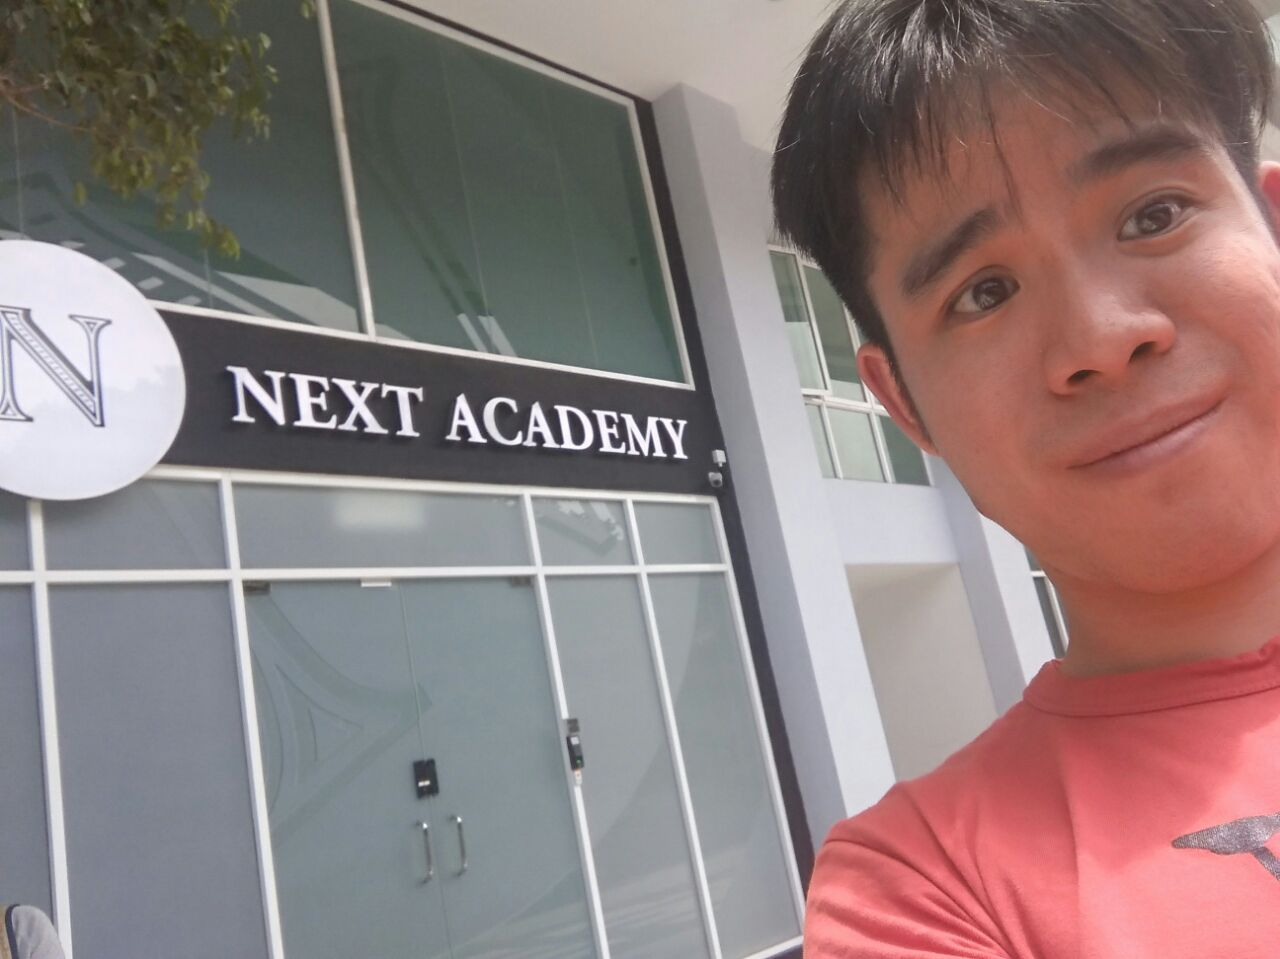 Soon Seng outside the NEXT Academy entrance